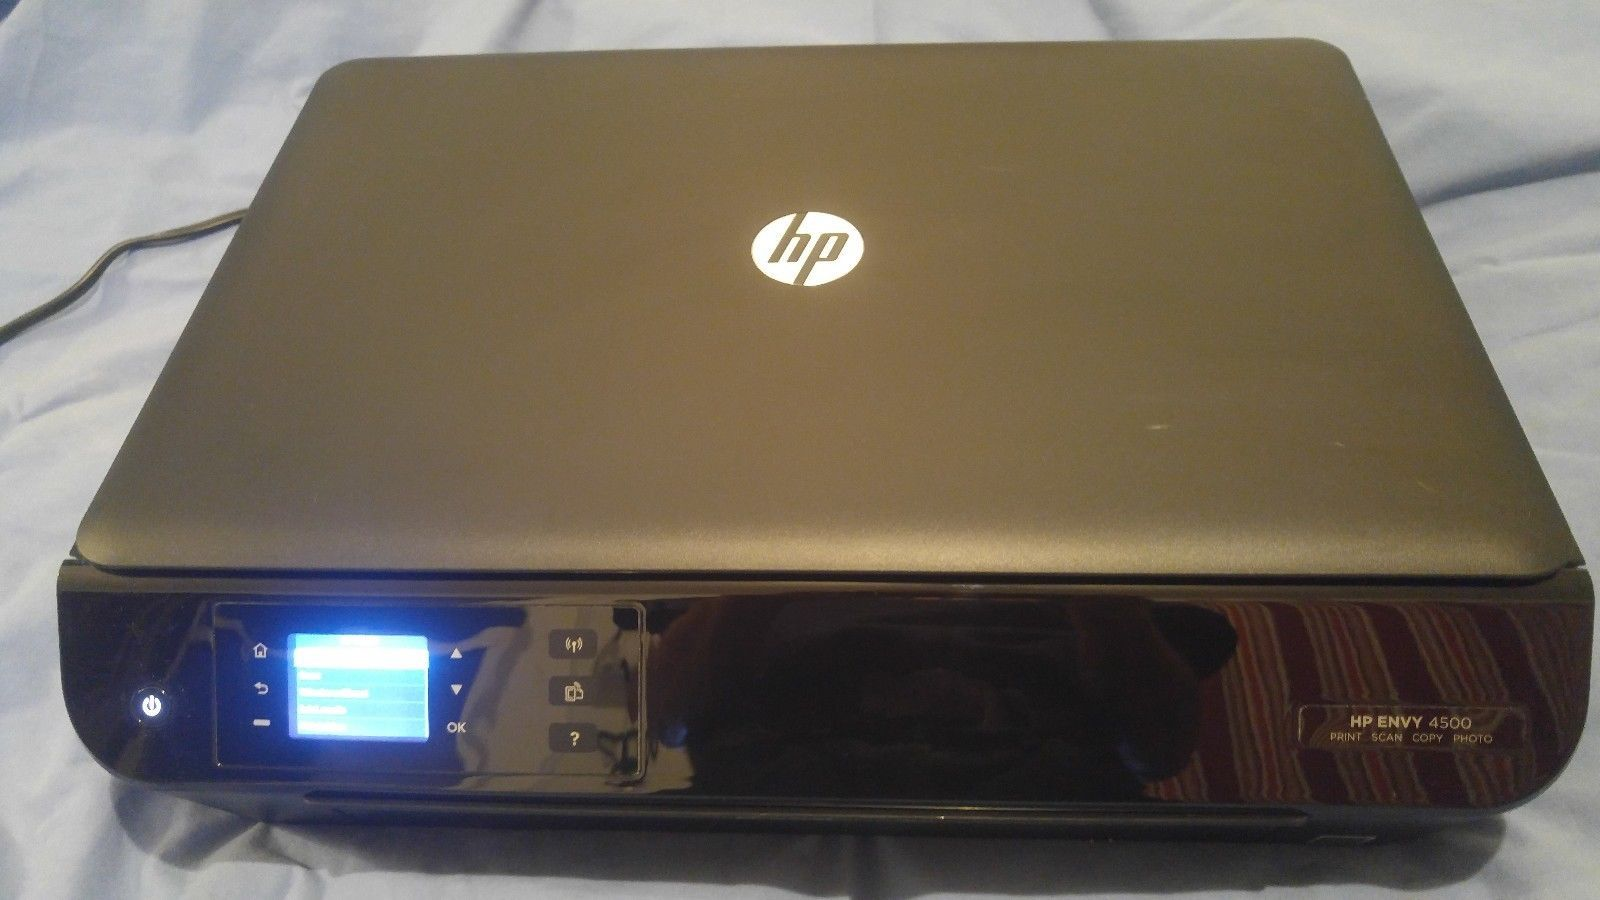 HP Envy 4500 Wireless All In One Color Photo Printer Print Scan Copy